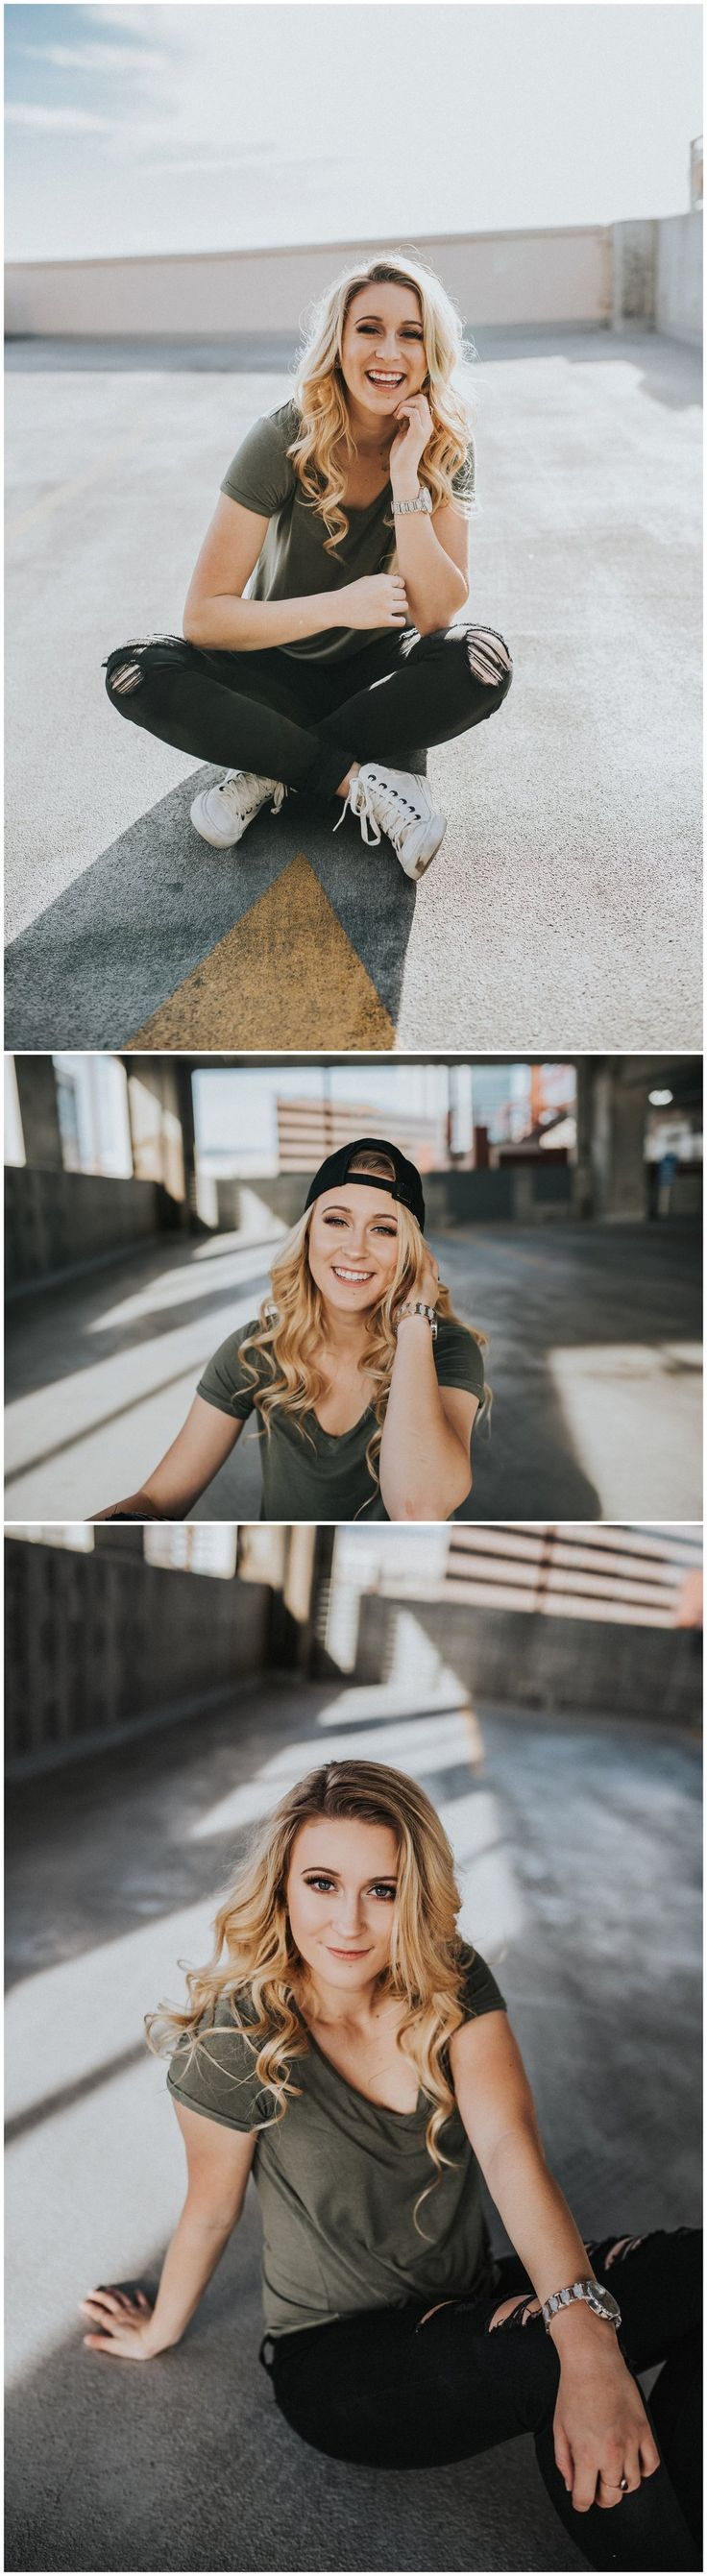 Boise Idaho Senior Portrait Photographer // Downtown Boise // Parking Garage // Urban Senior Pictures // Fall Senior Picture Inspiration outfit ideas // Senior Posing Inspiration // Senior Girl // Makayla Madden Photography